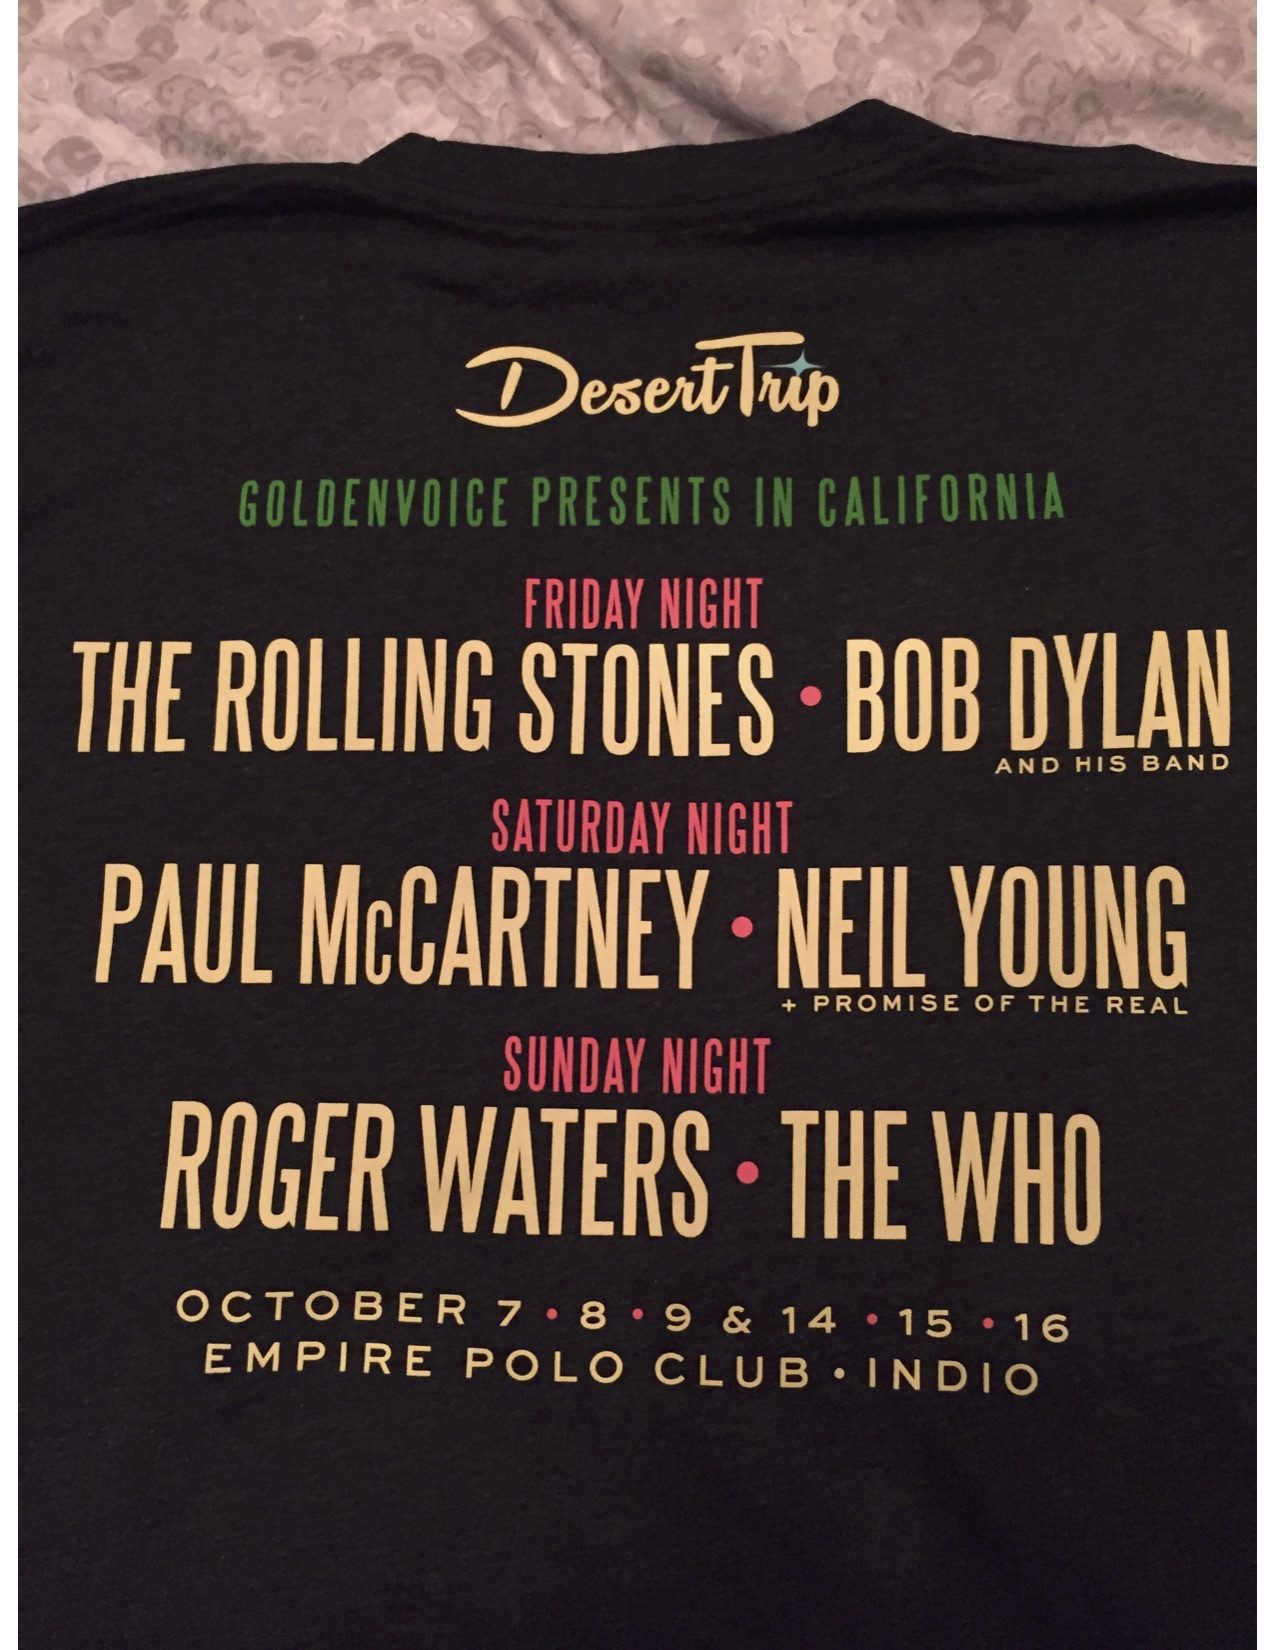 Souvenir Desert Trip t-shirt announcing all the bands.